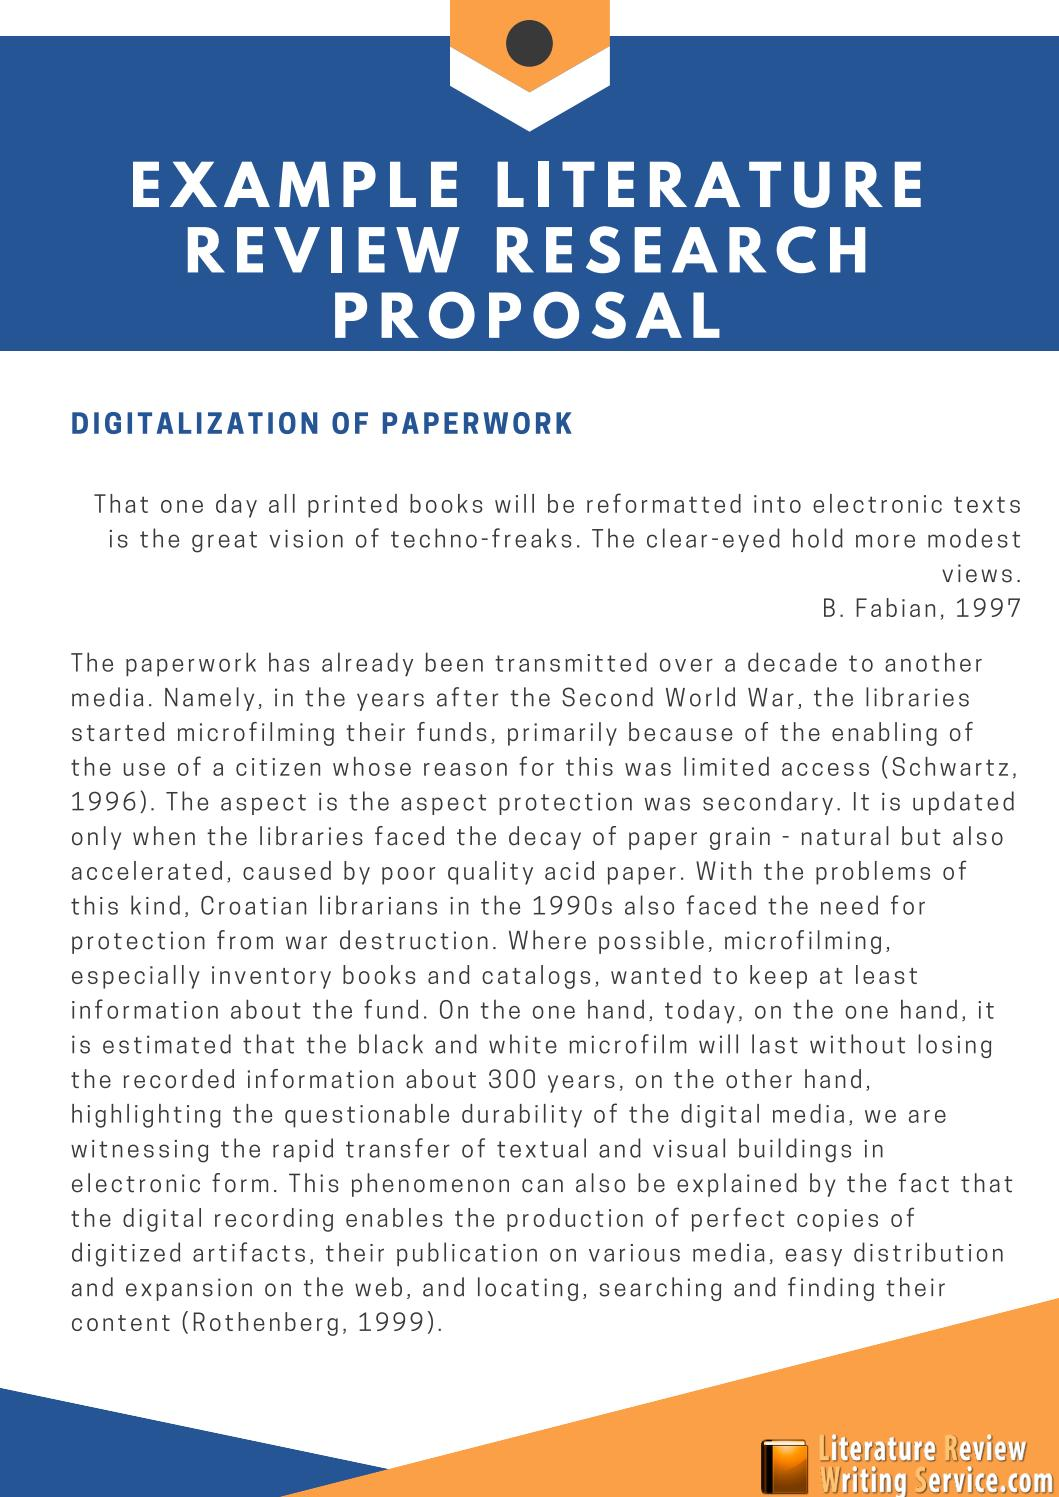 Review of related literature in research proposal compare contrast essay point view